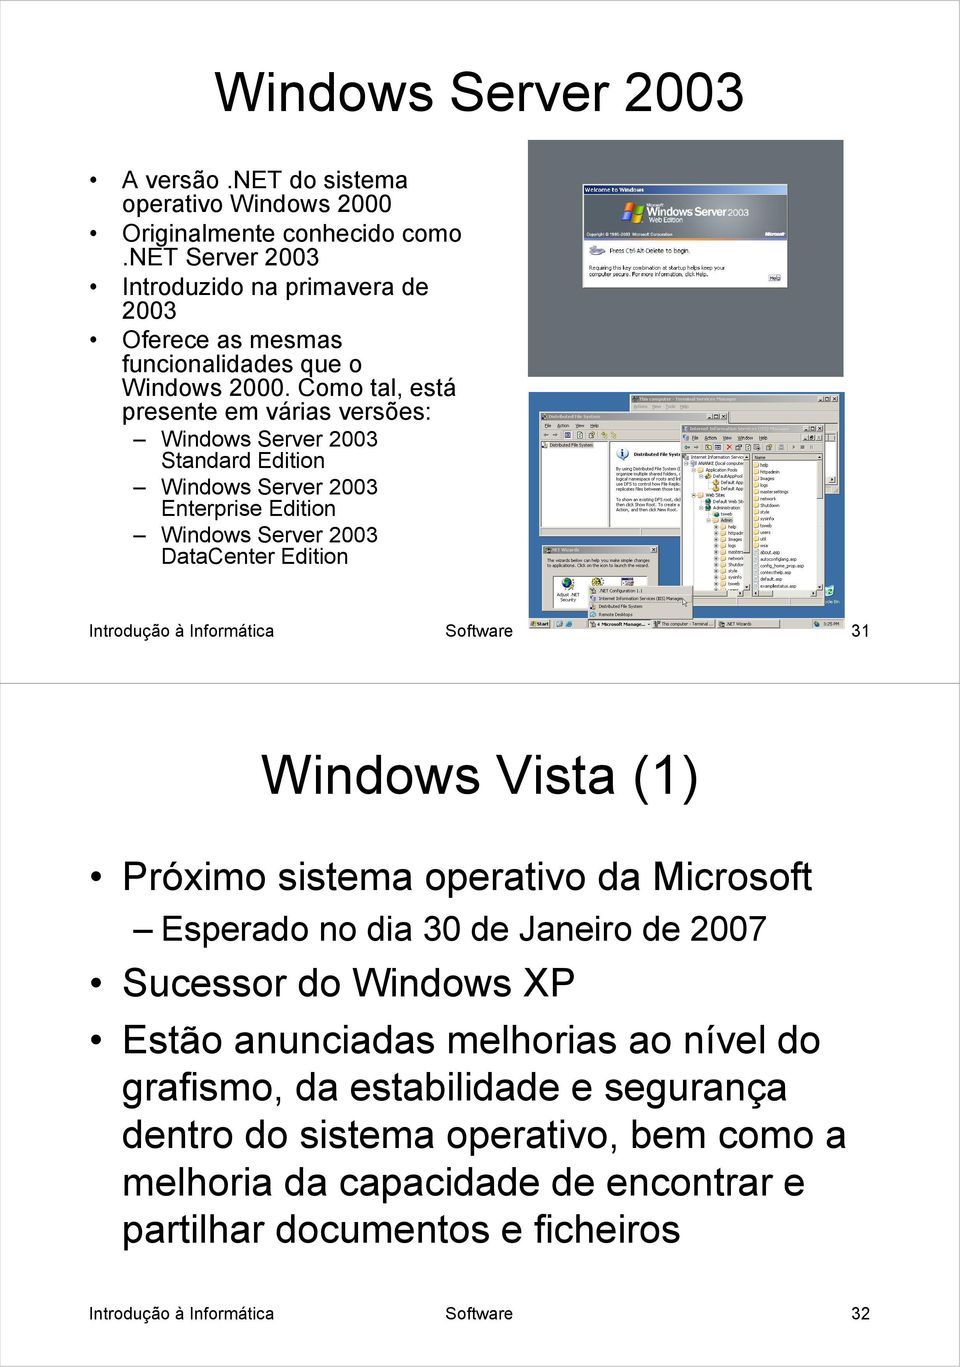 Como tal, está presente em várias versões: Windows Server 2003 Standard Edition Windows Server 2003 Enterprise Edition Windows Server 2003 DataCenter Edition Introdução à Informática